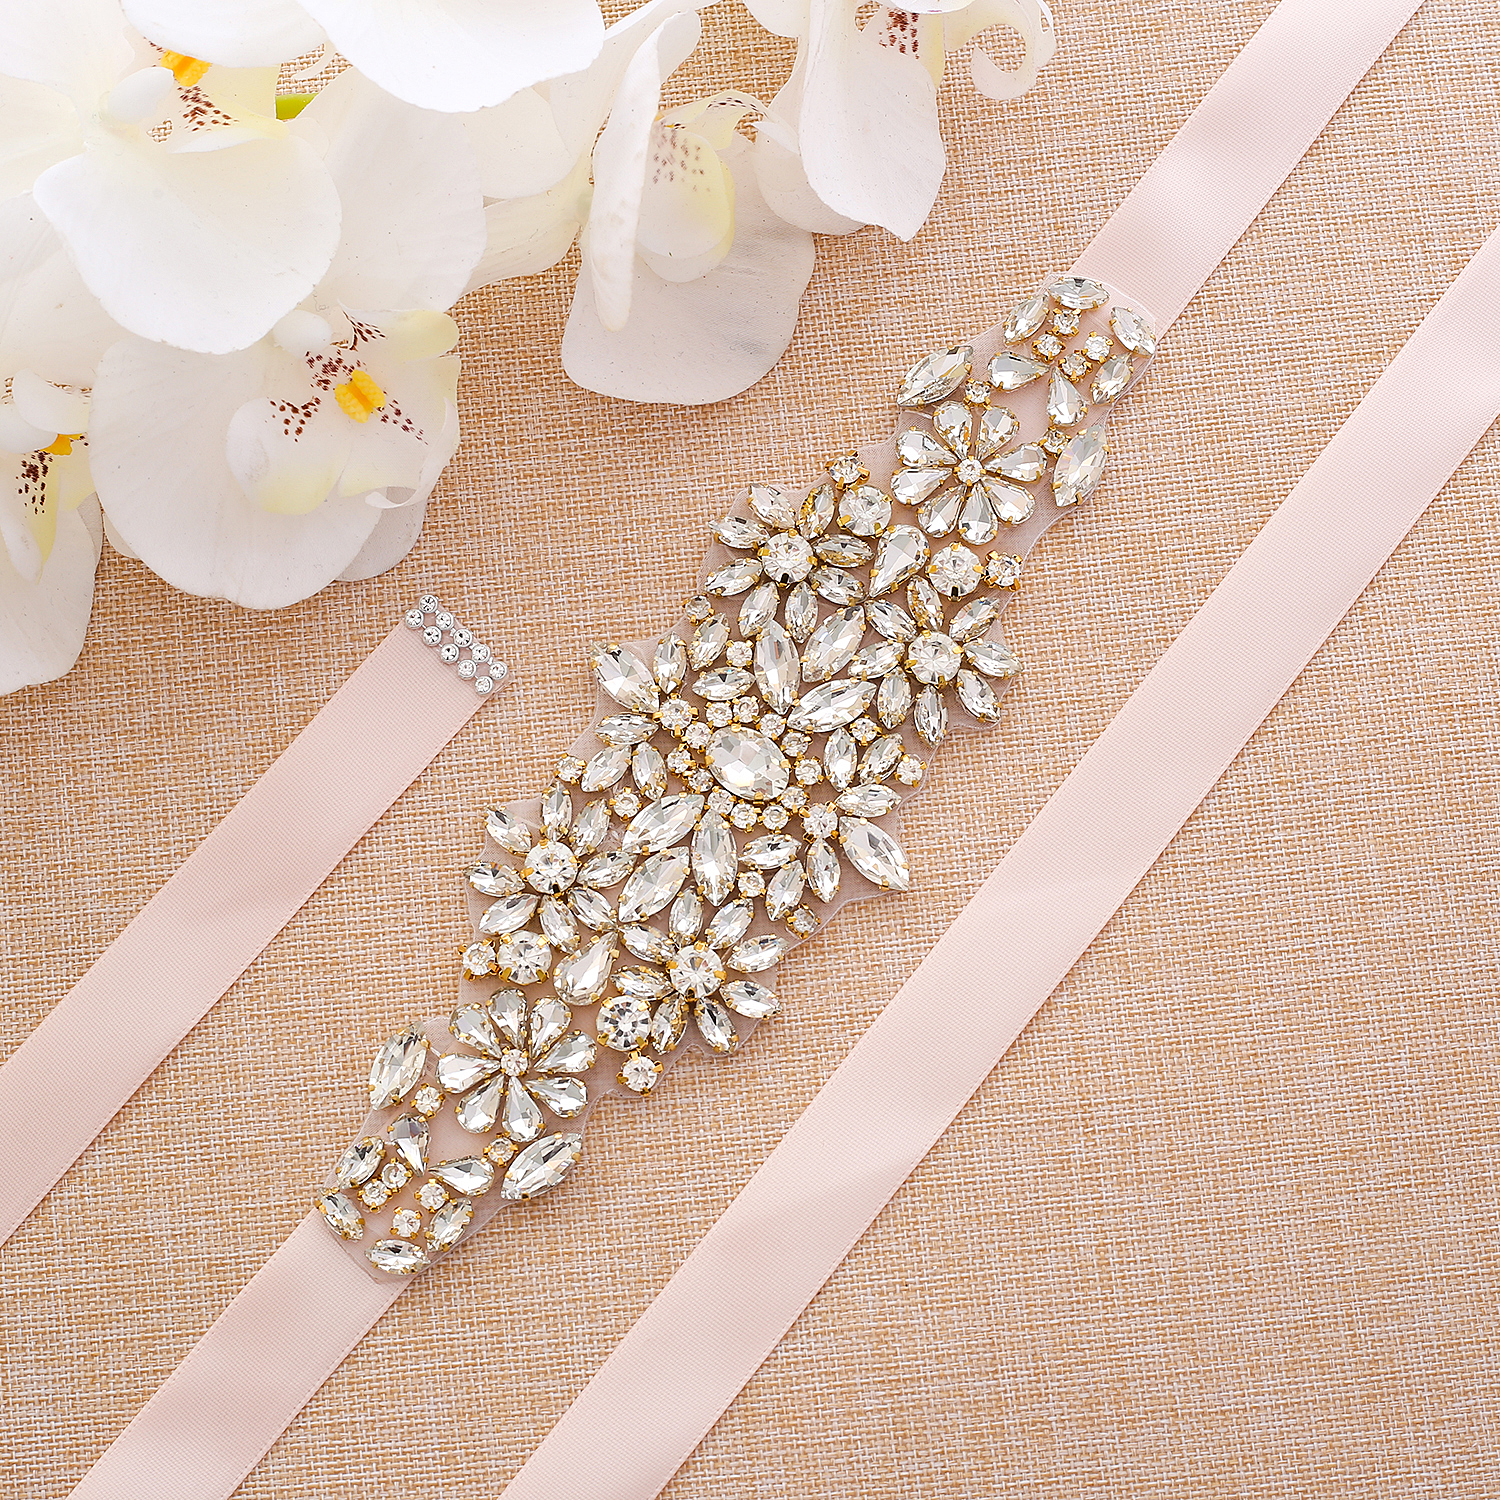 Gold Rhinestones Wedding Belt Hand Beaded Bridal Sash Crystal Pearls Bridal Belt For Women Long Dresses  A183G